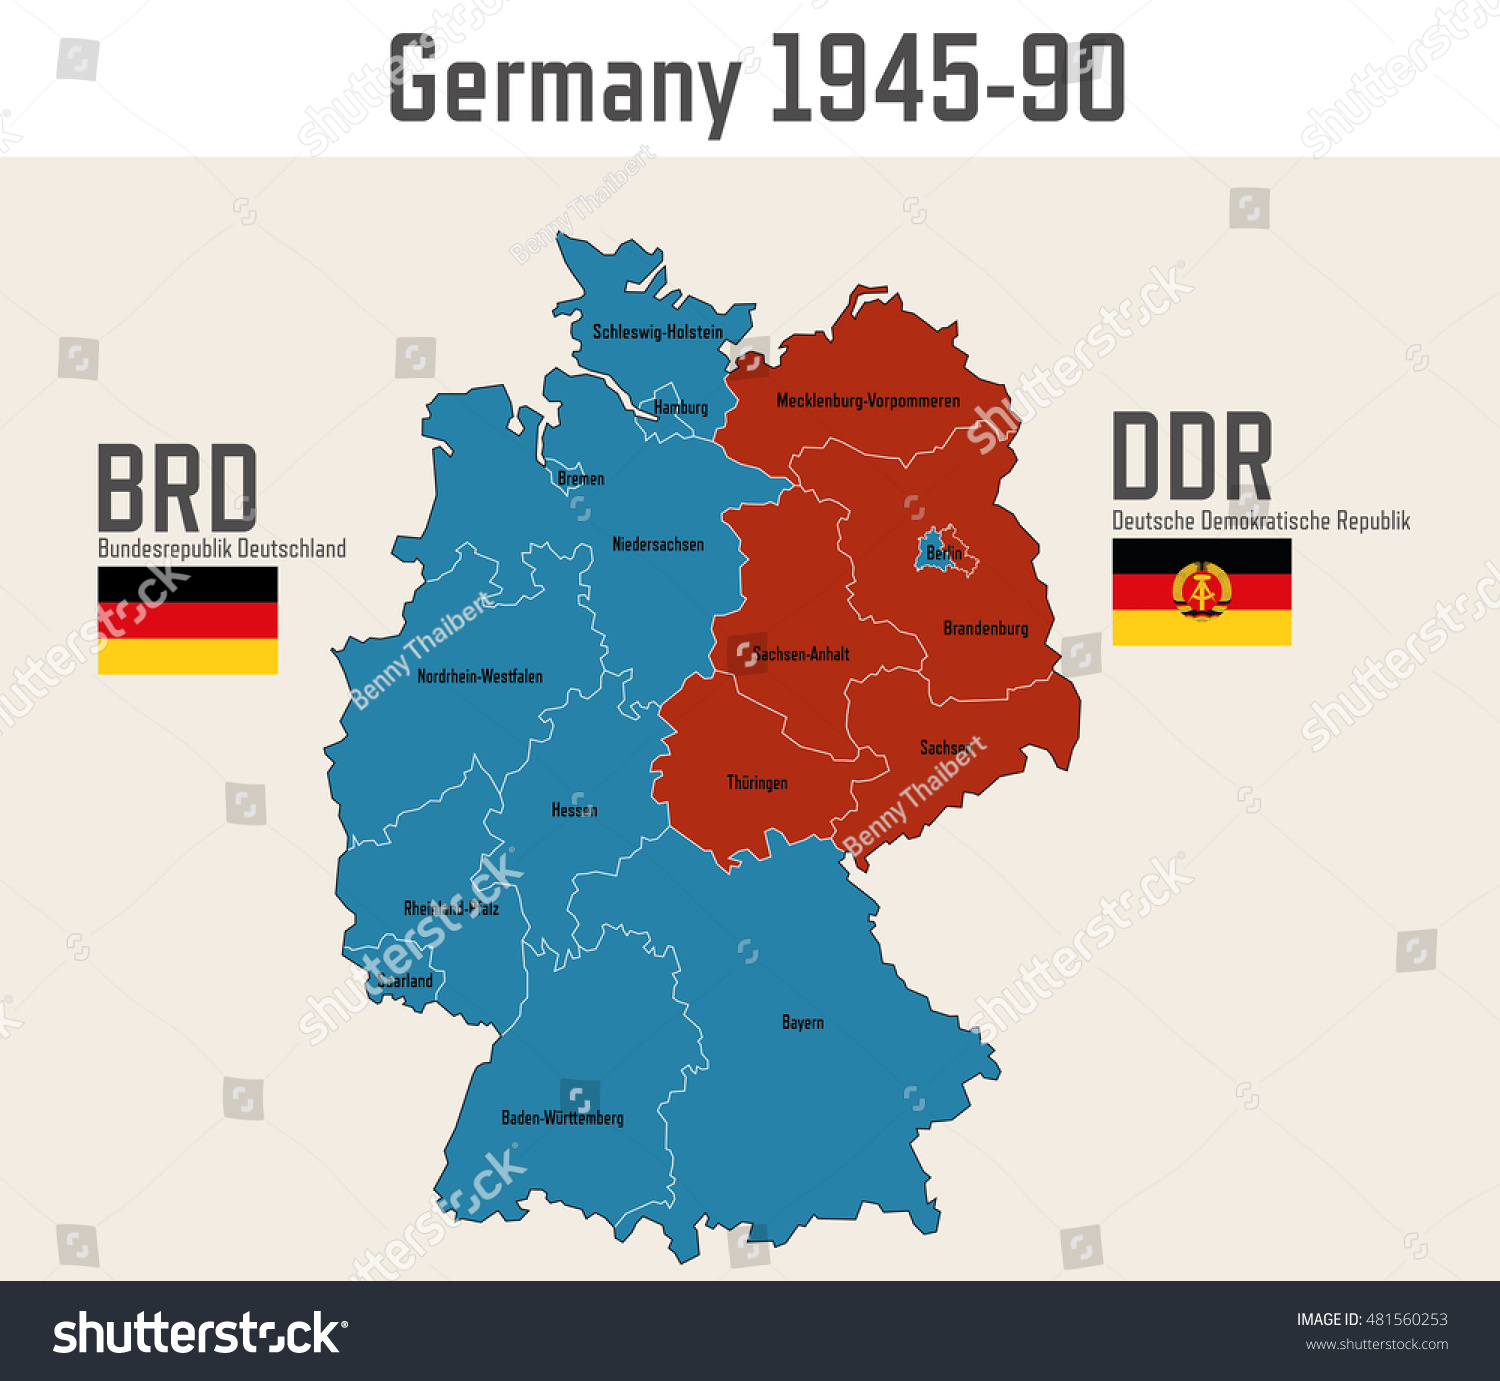 Germany Cold War Map Flags Eastern Stock Vector 481560253